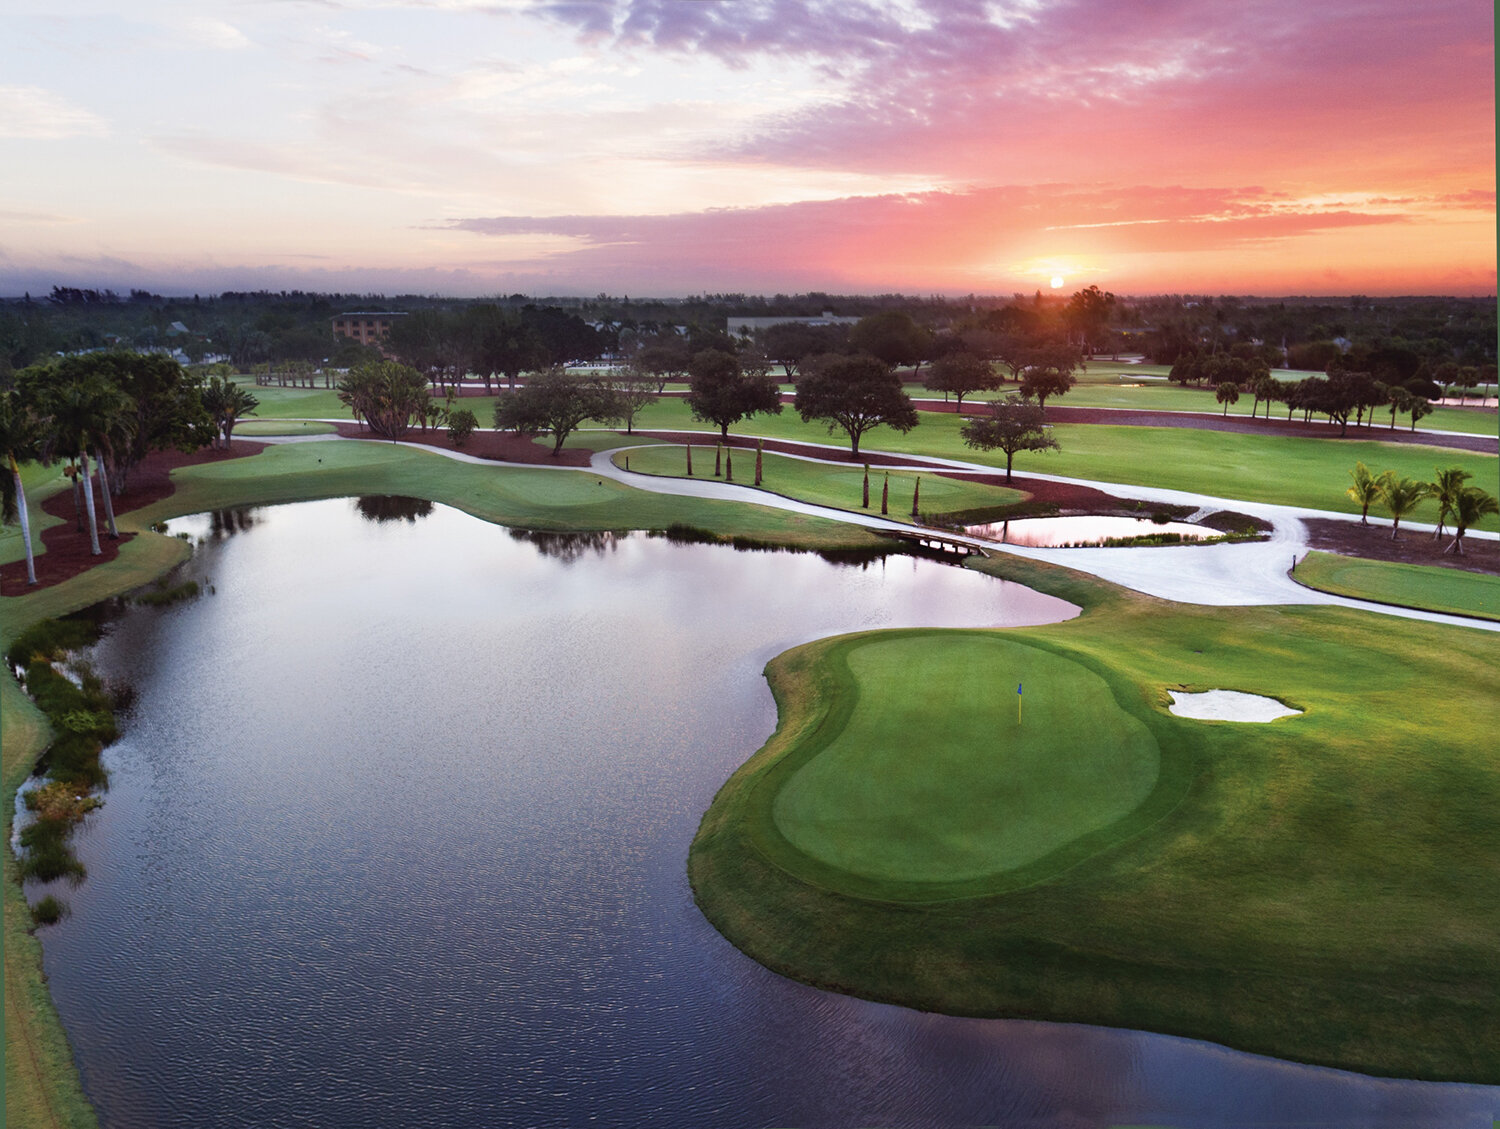 Sunrise with Golf Course Lake View.jpg